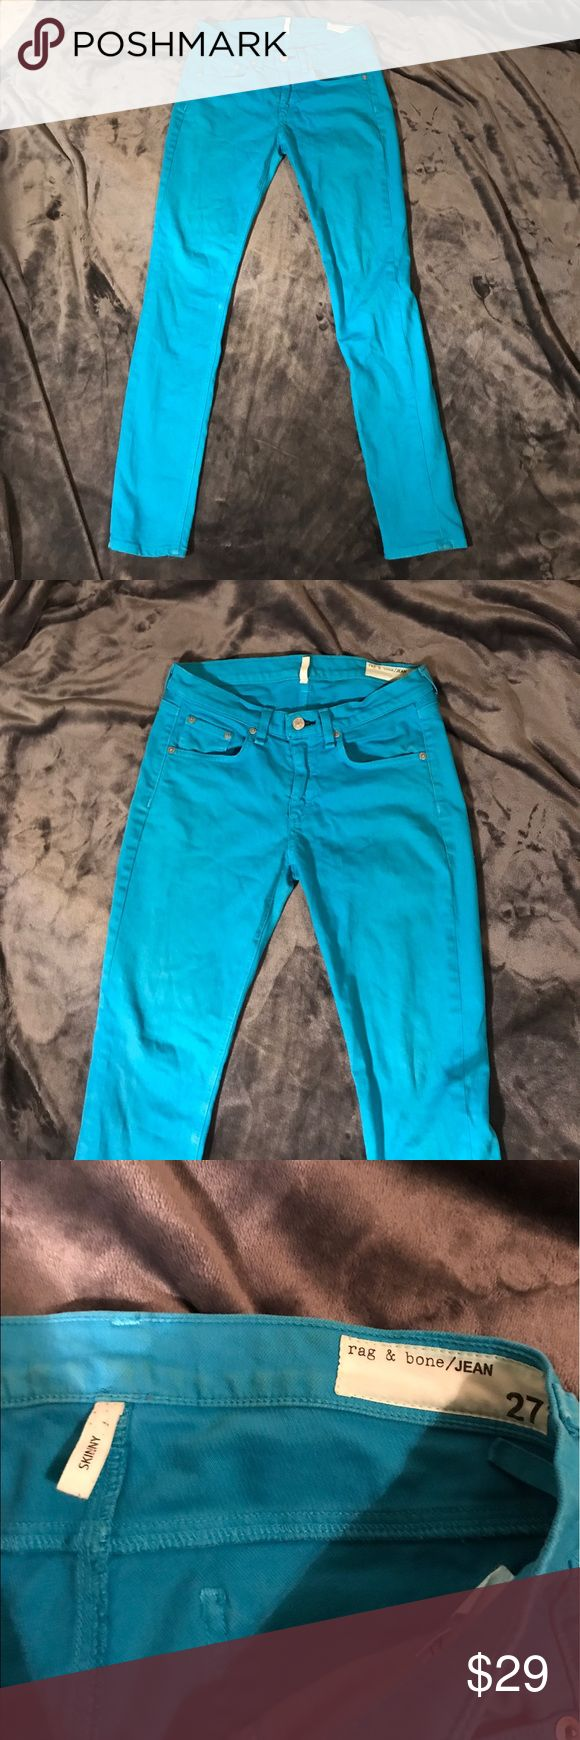 Rag and Bone teal skinny jeans Rag and Bone turquoise skinny jeans. Bright teal color. Some discoloration on pants. Size 27. Shoot me an offer they need to go :) rag & bone Jeans Skinny